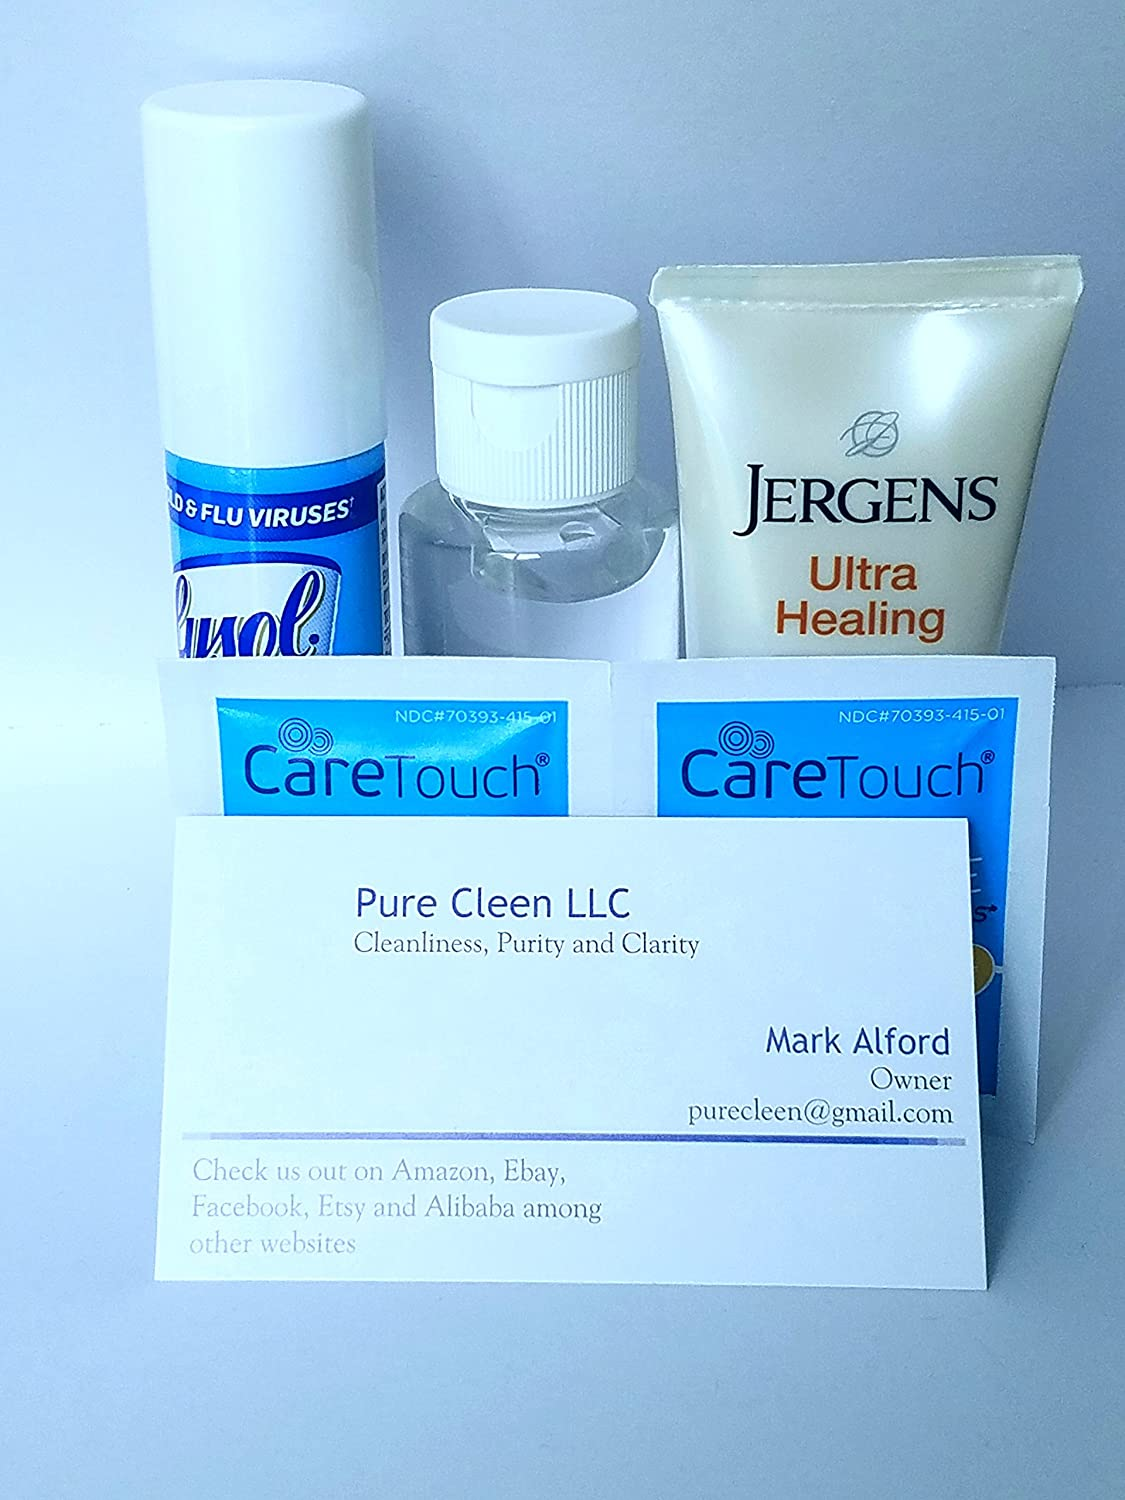 Amazon.com: Travel Disinfectant and Antibacterial kit Eliminates 99.9% of Germs and Viruses: Health & Personal Care